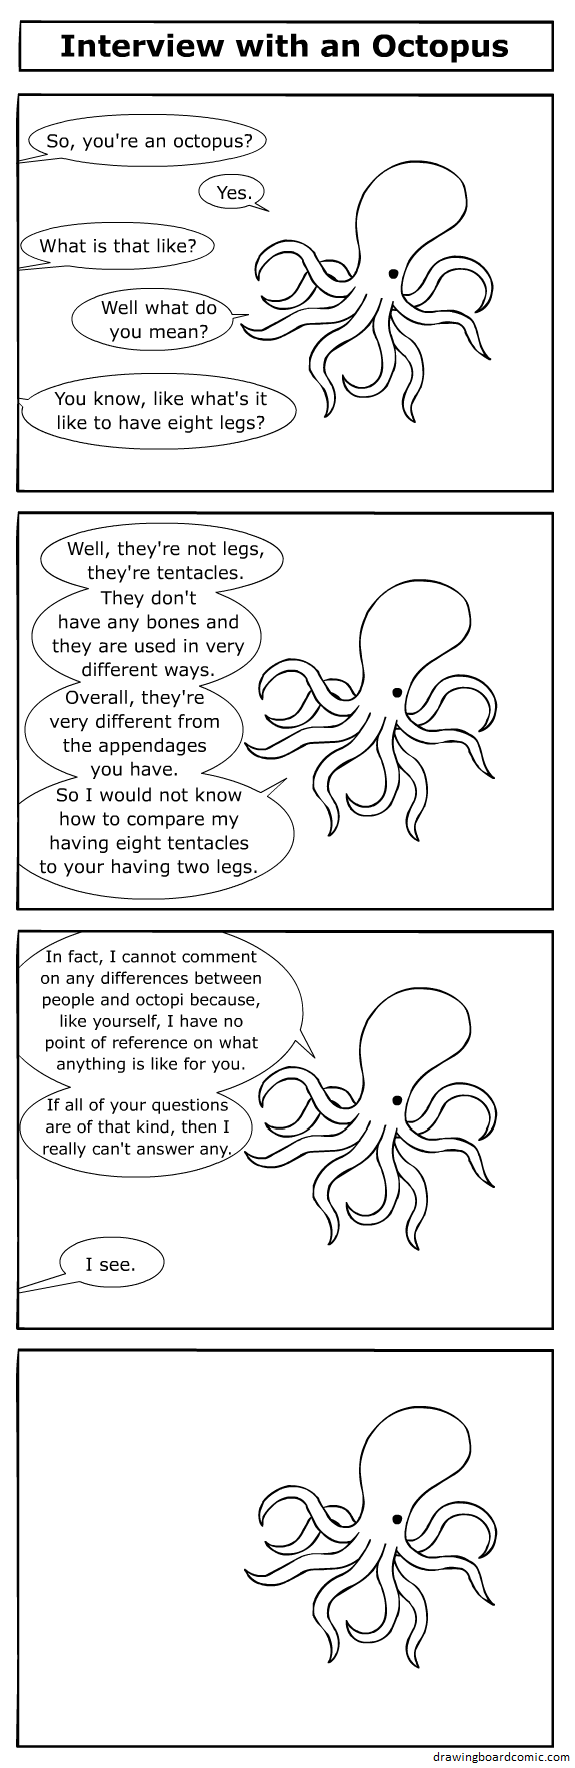 I got the idea for this comic when I wondered what it would be like to be an octopus.